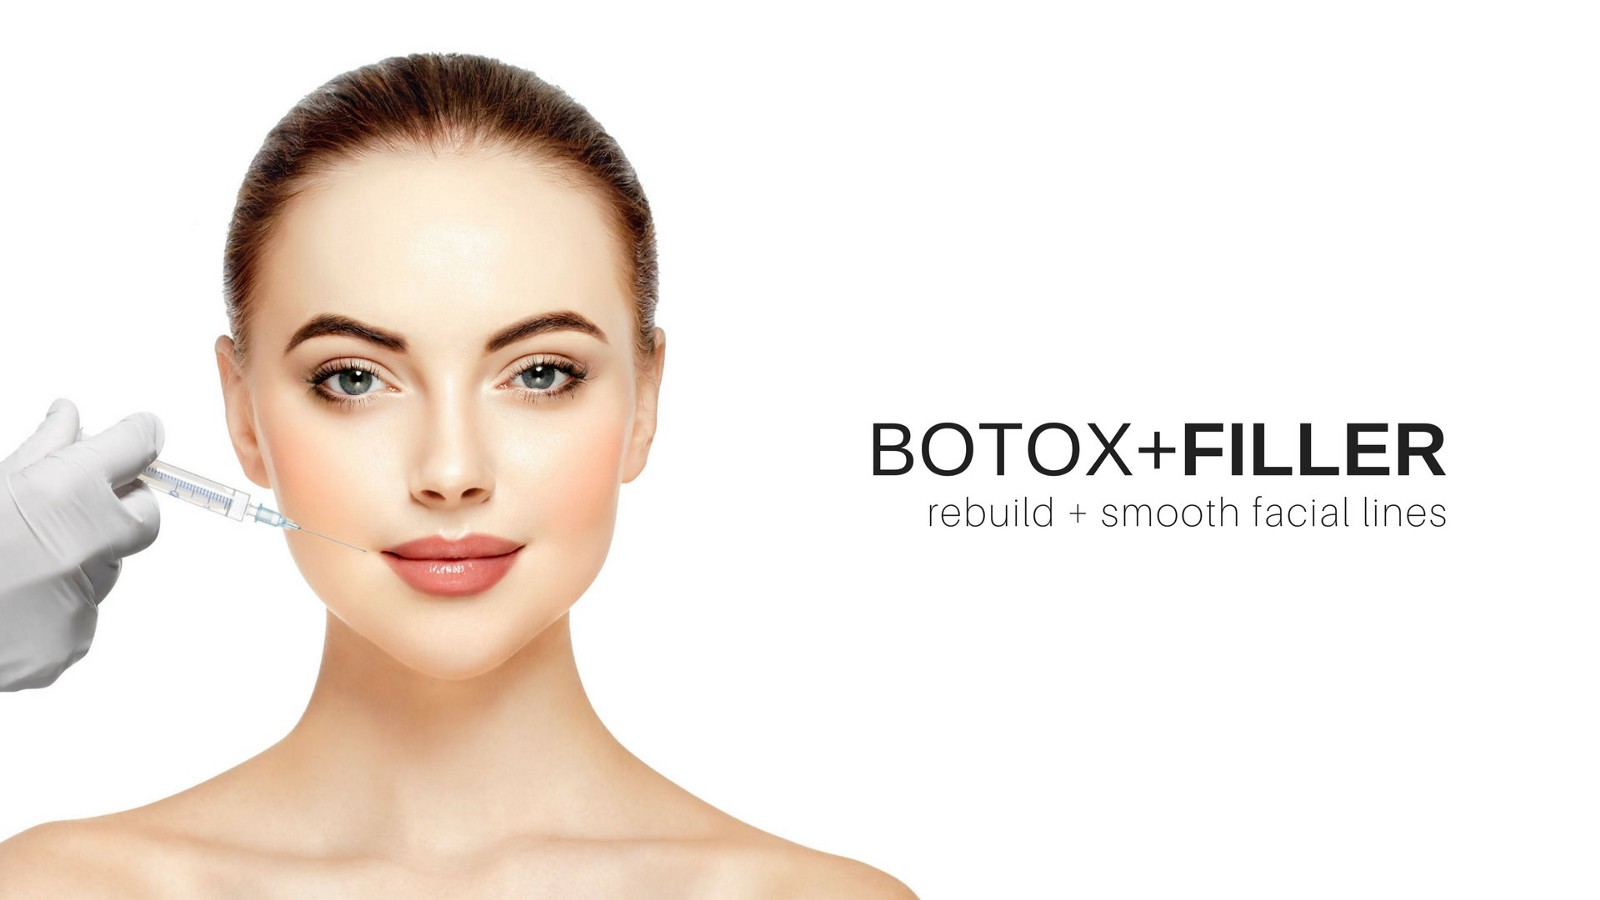 Naturalbeauty   The difference between botox and filler 1600x900